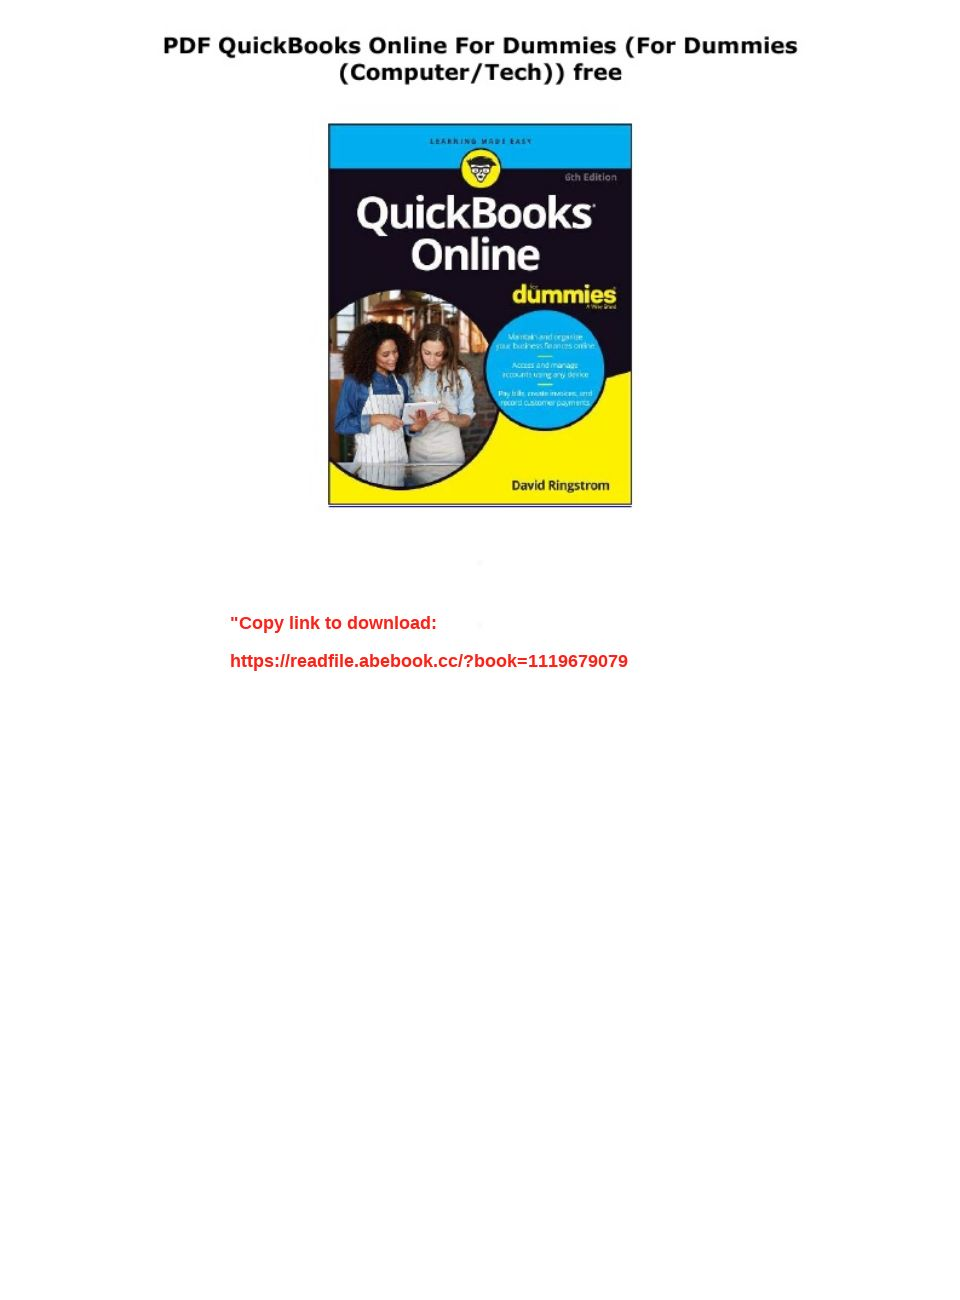 Quickbooks Online For Dummies Pdf Free